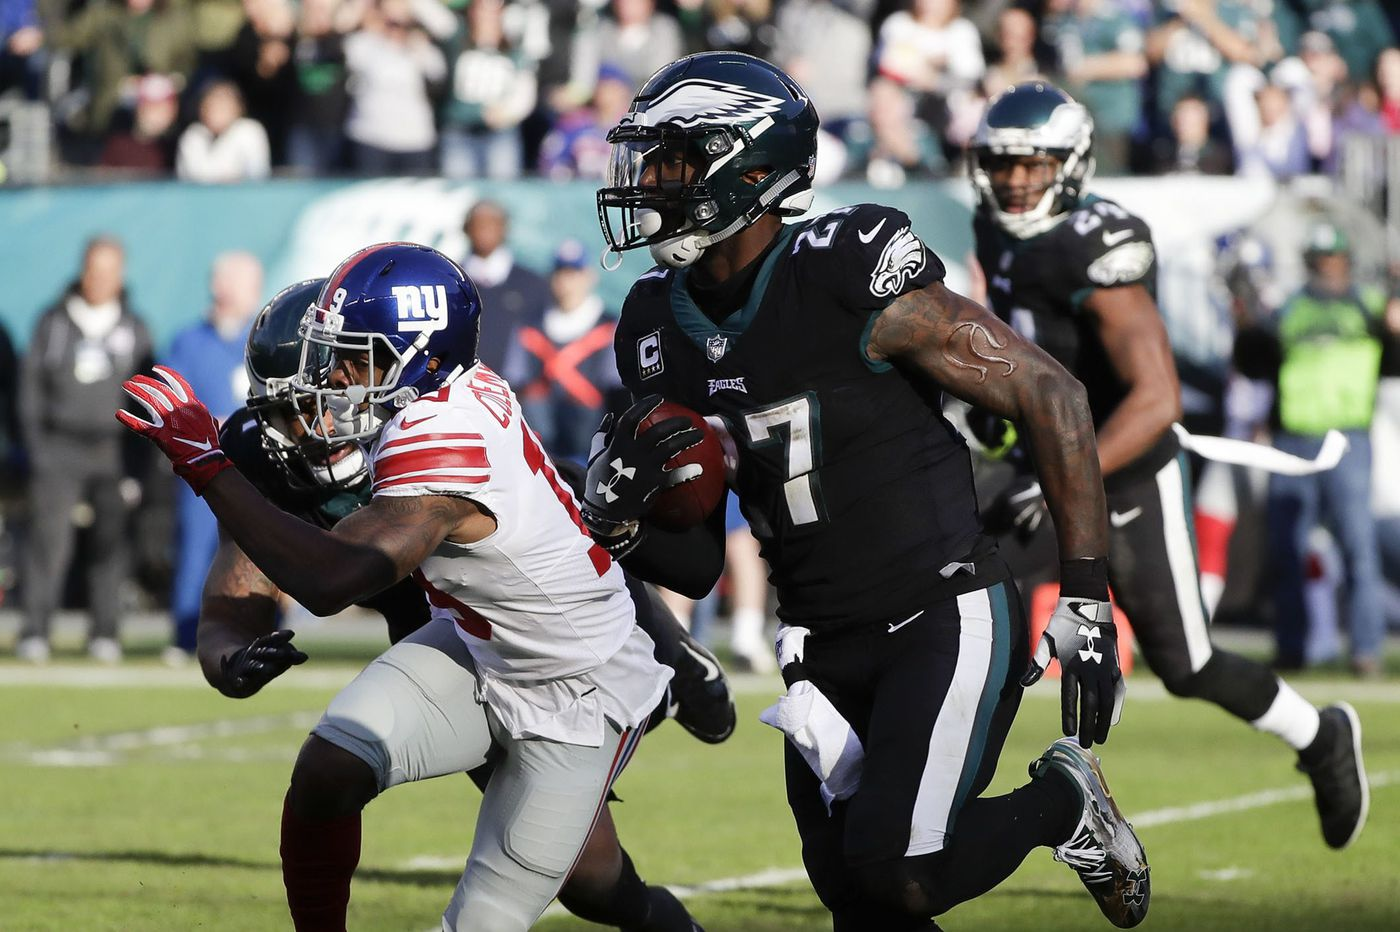 With interception, Malcolm Jenkins backs up his words to lead the Eagles in win over Giants | Bob Ford